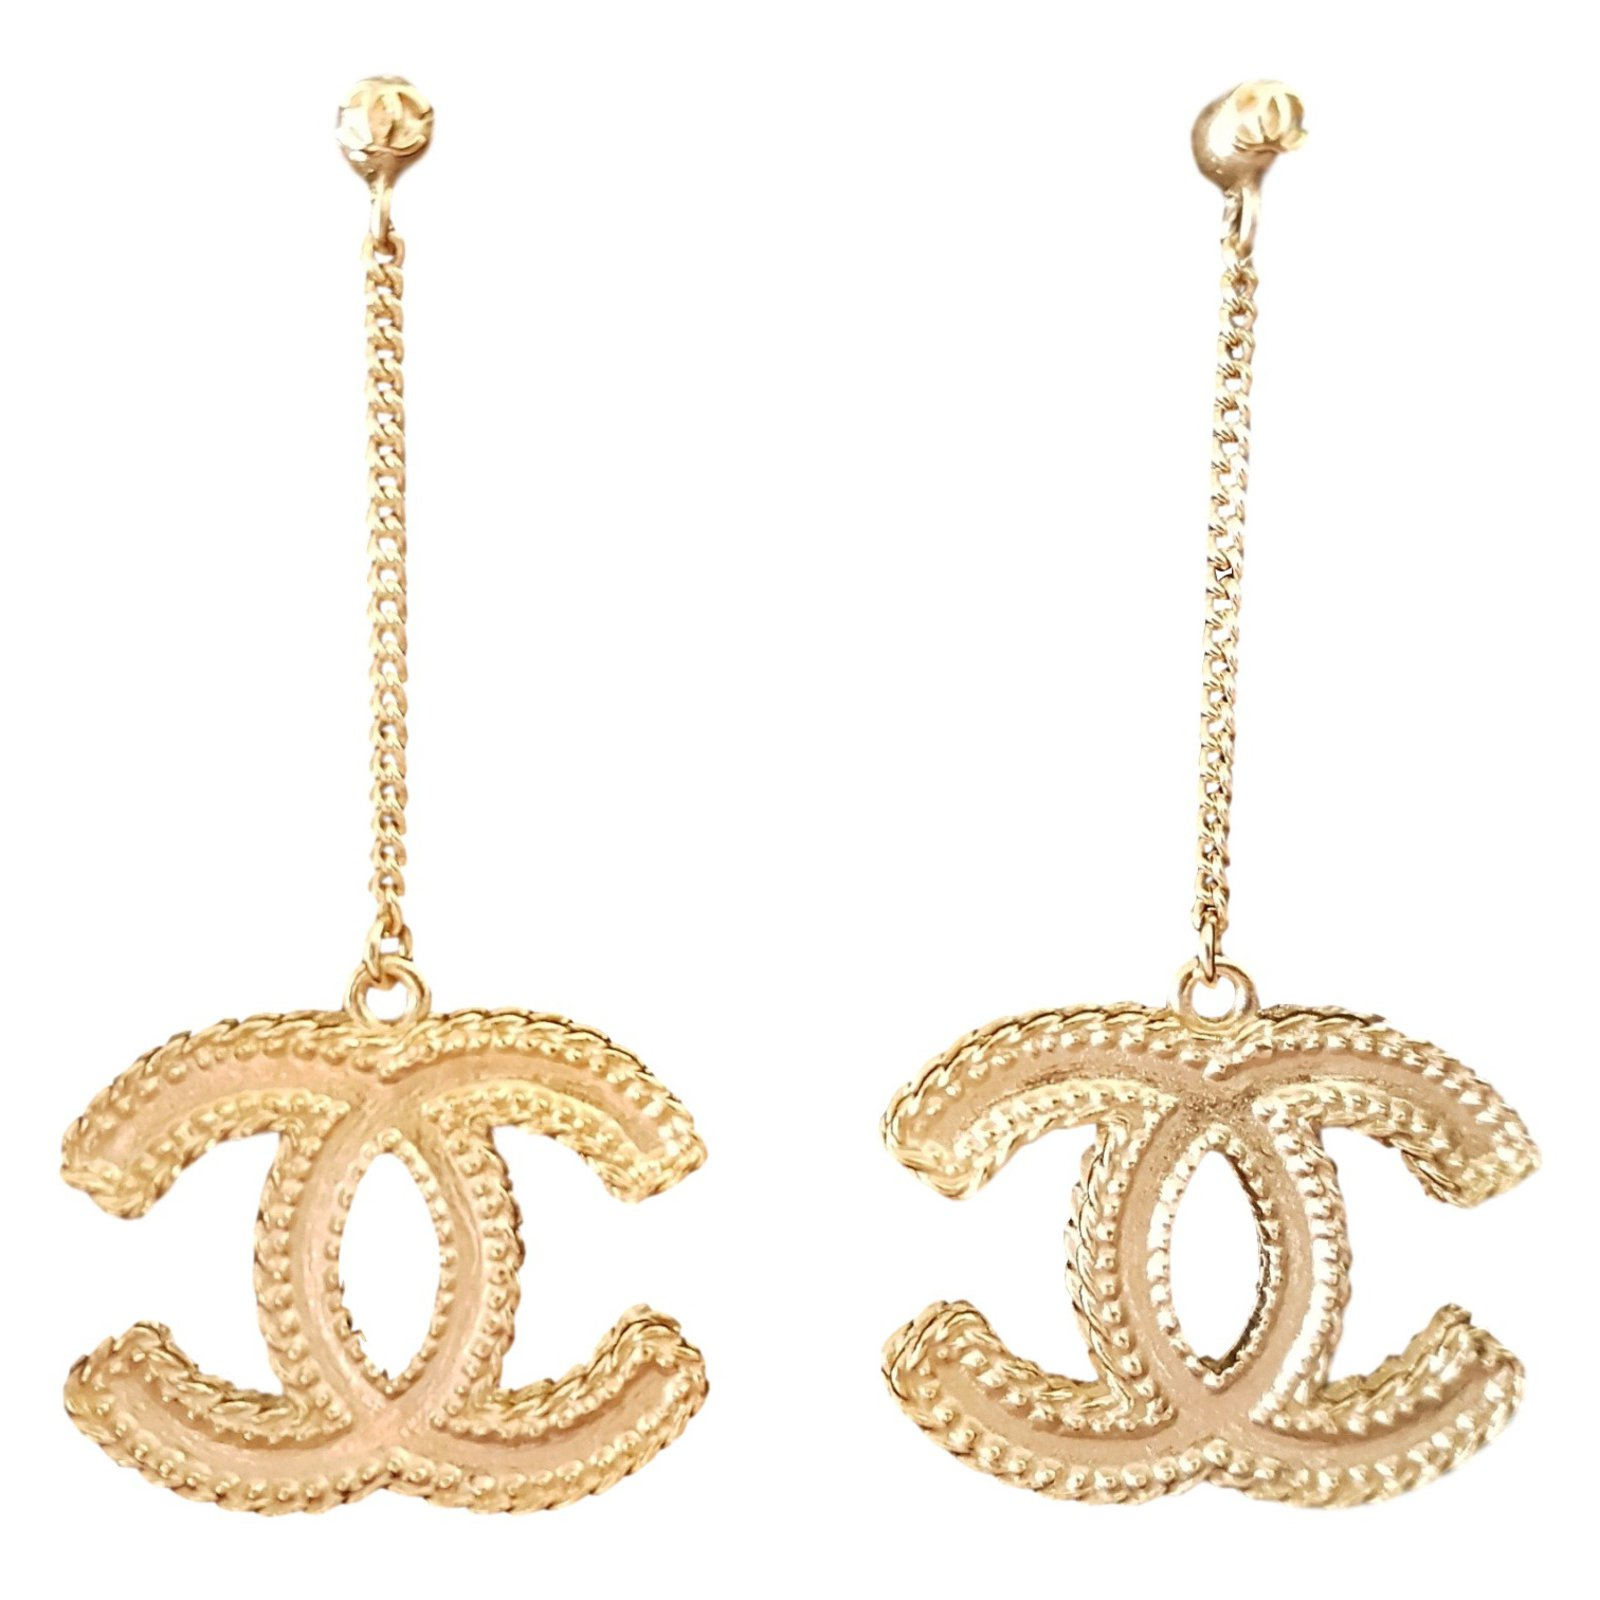 channel jewelry earrings chanel earrings 2017 collection unworn earrings other 2100